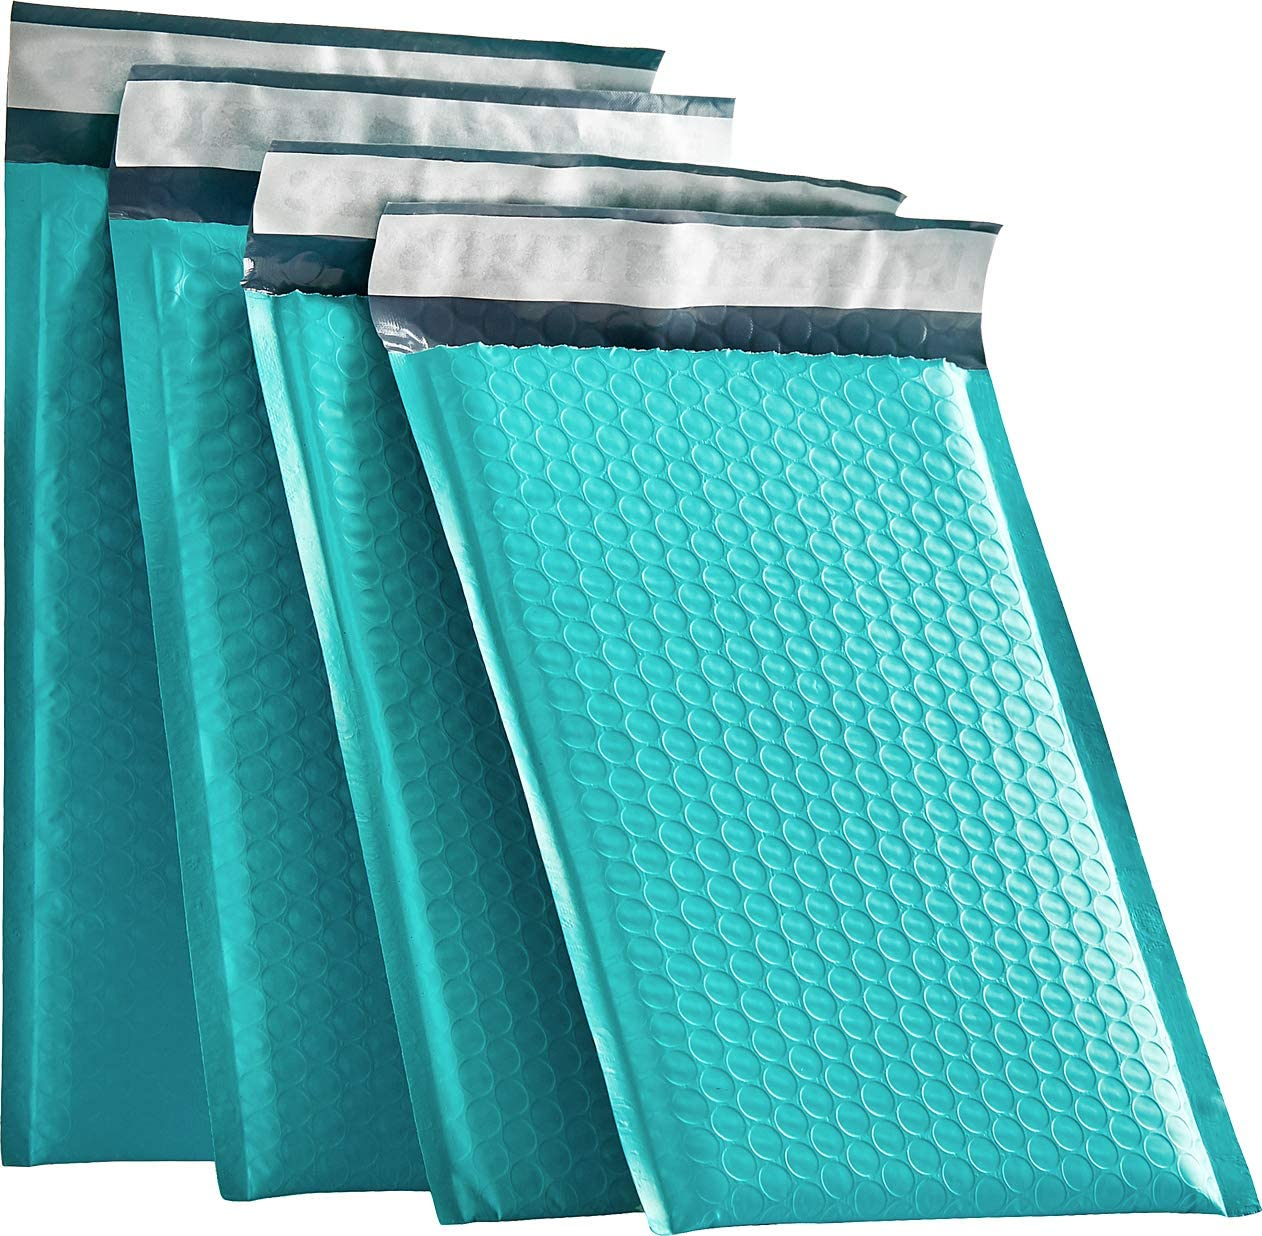 XCGS 6x10 Inch Green Padded Bubble Mailers Pack of 25 Padded Bubble Envelopes #0 Self Sealing Bubble Mailing Envelope Bags for Shipping and Packaging (Usable Size: 6x9